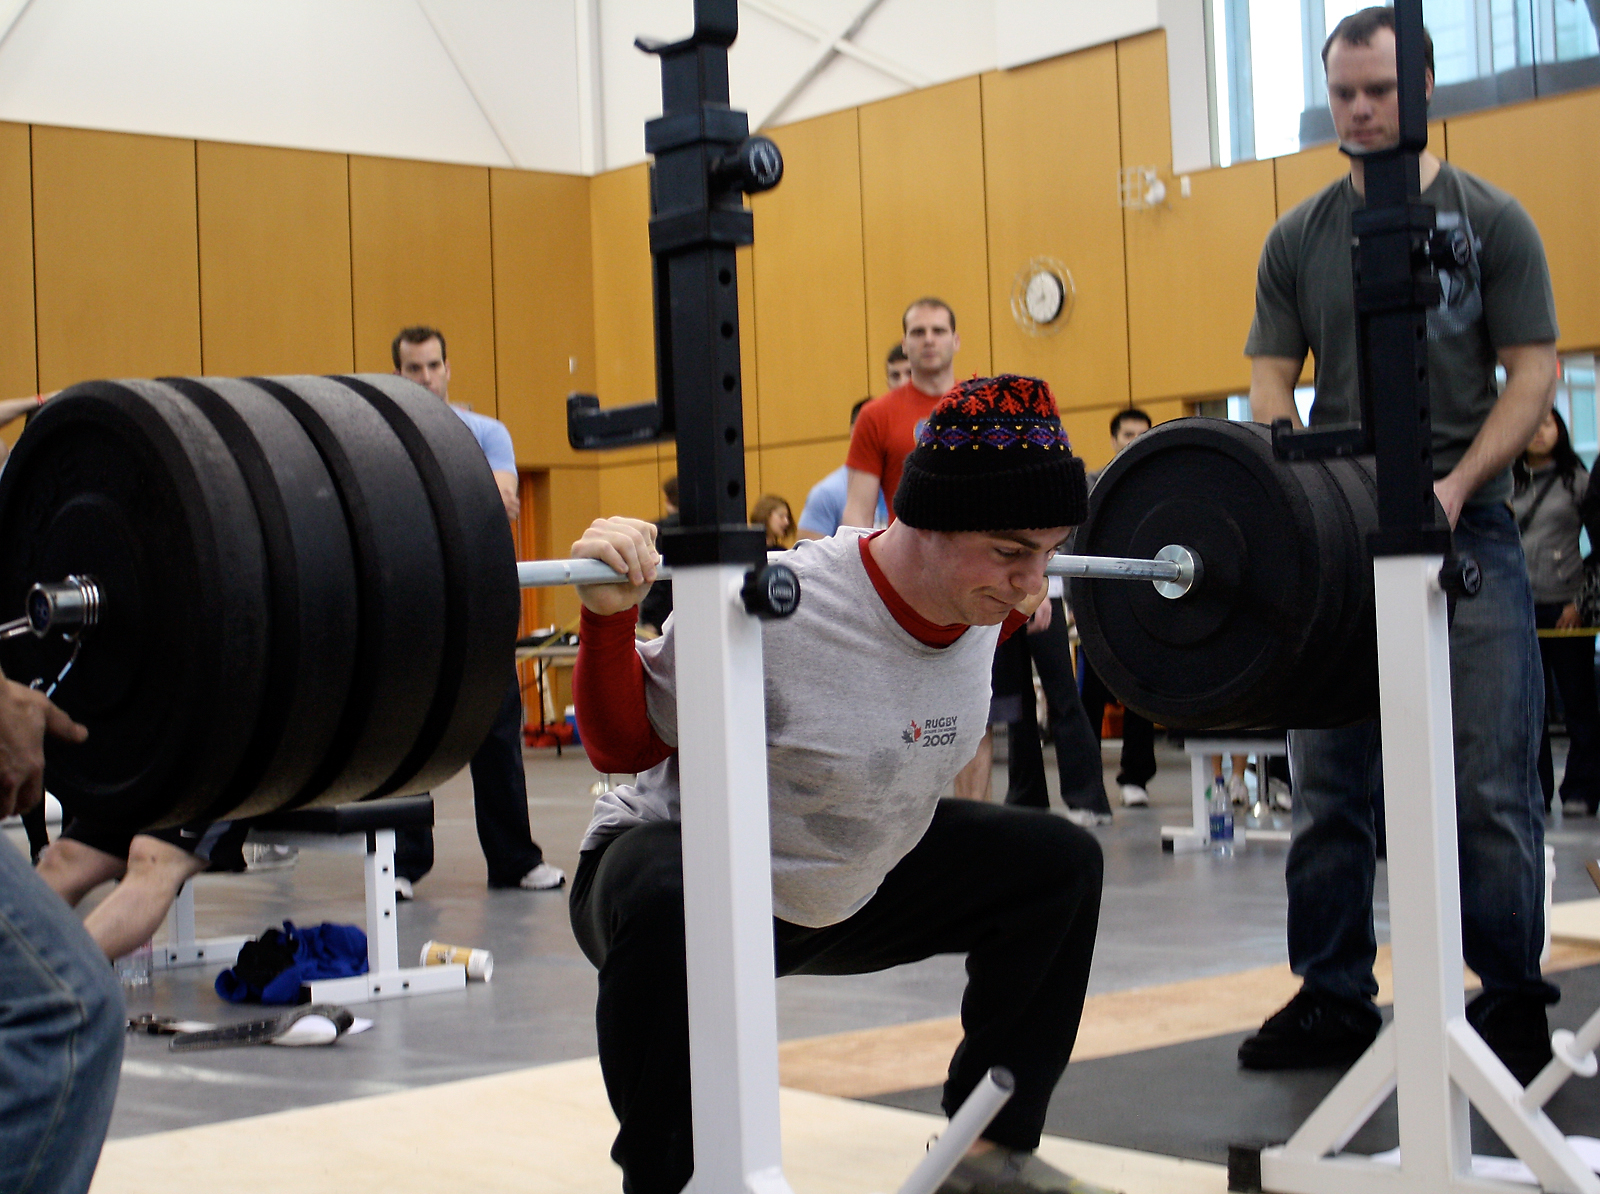 http://games2010.crossfit.com/static/images/rorym_Games2010_BCSectional_BigSquat.jpg